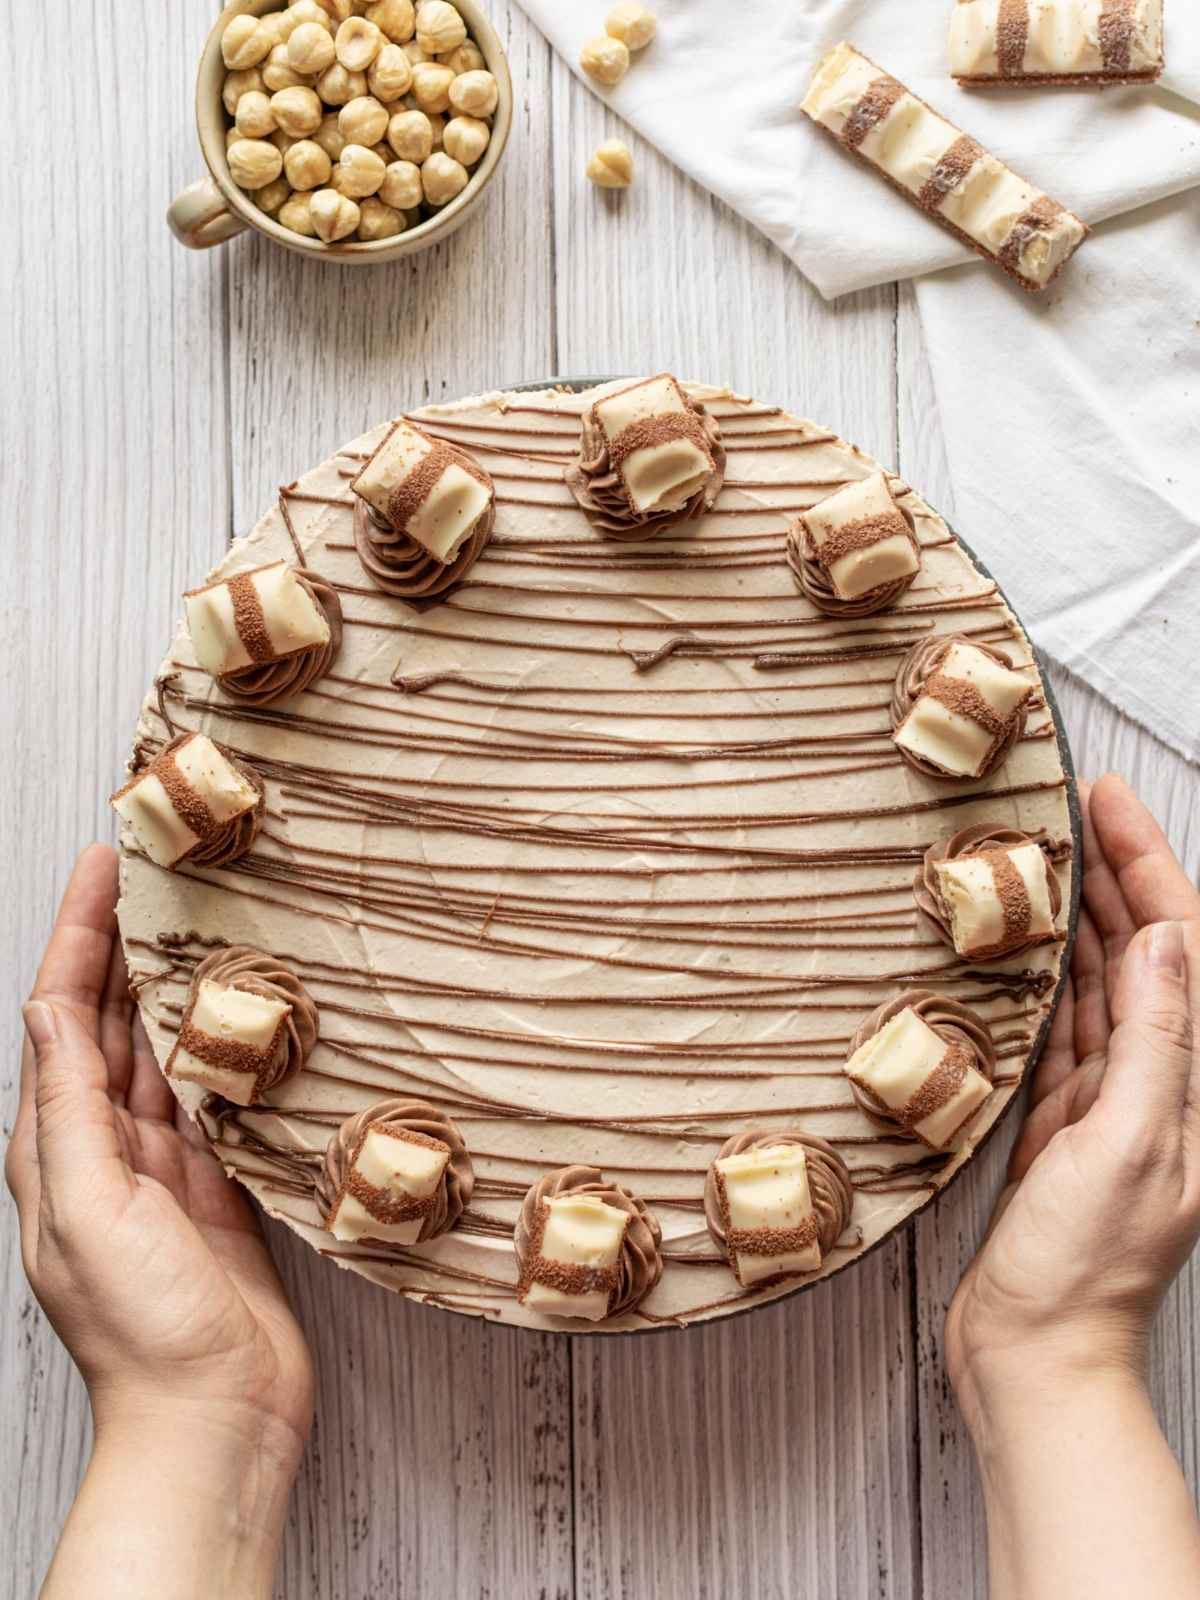 Flatlay image of hands holding plate of Kinder Bueno cheesecake